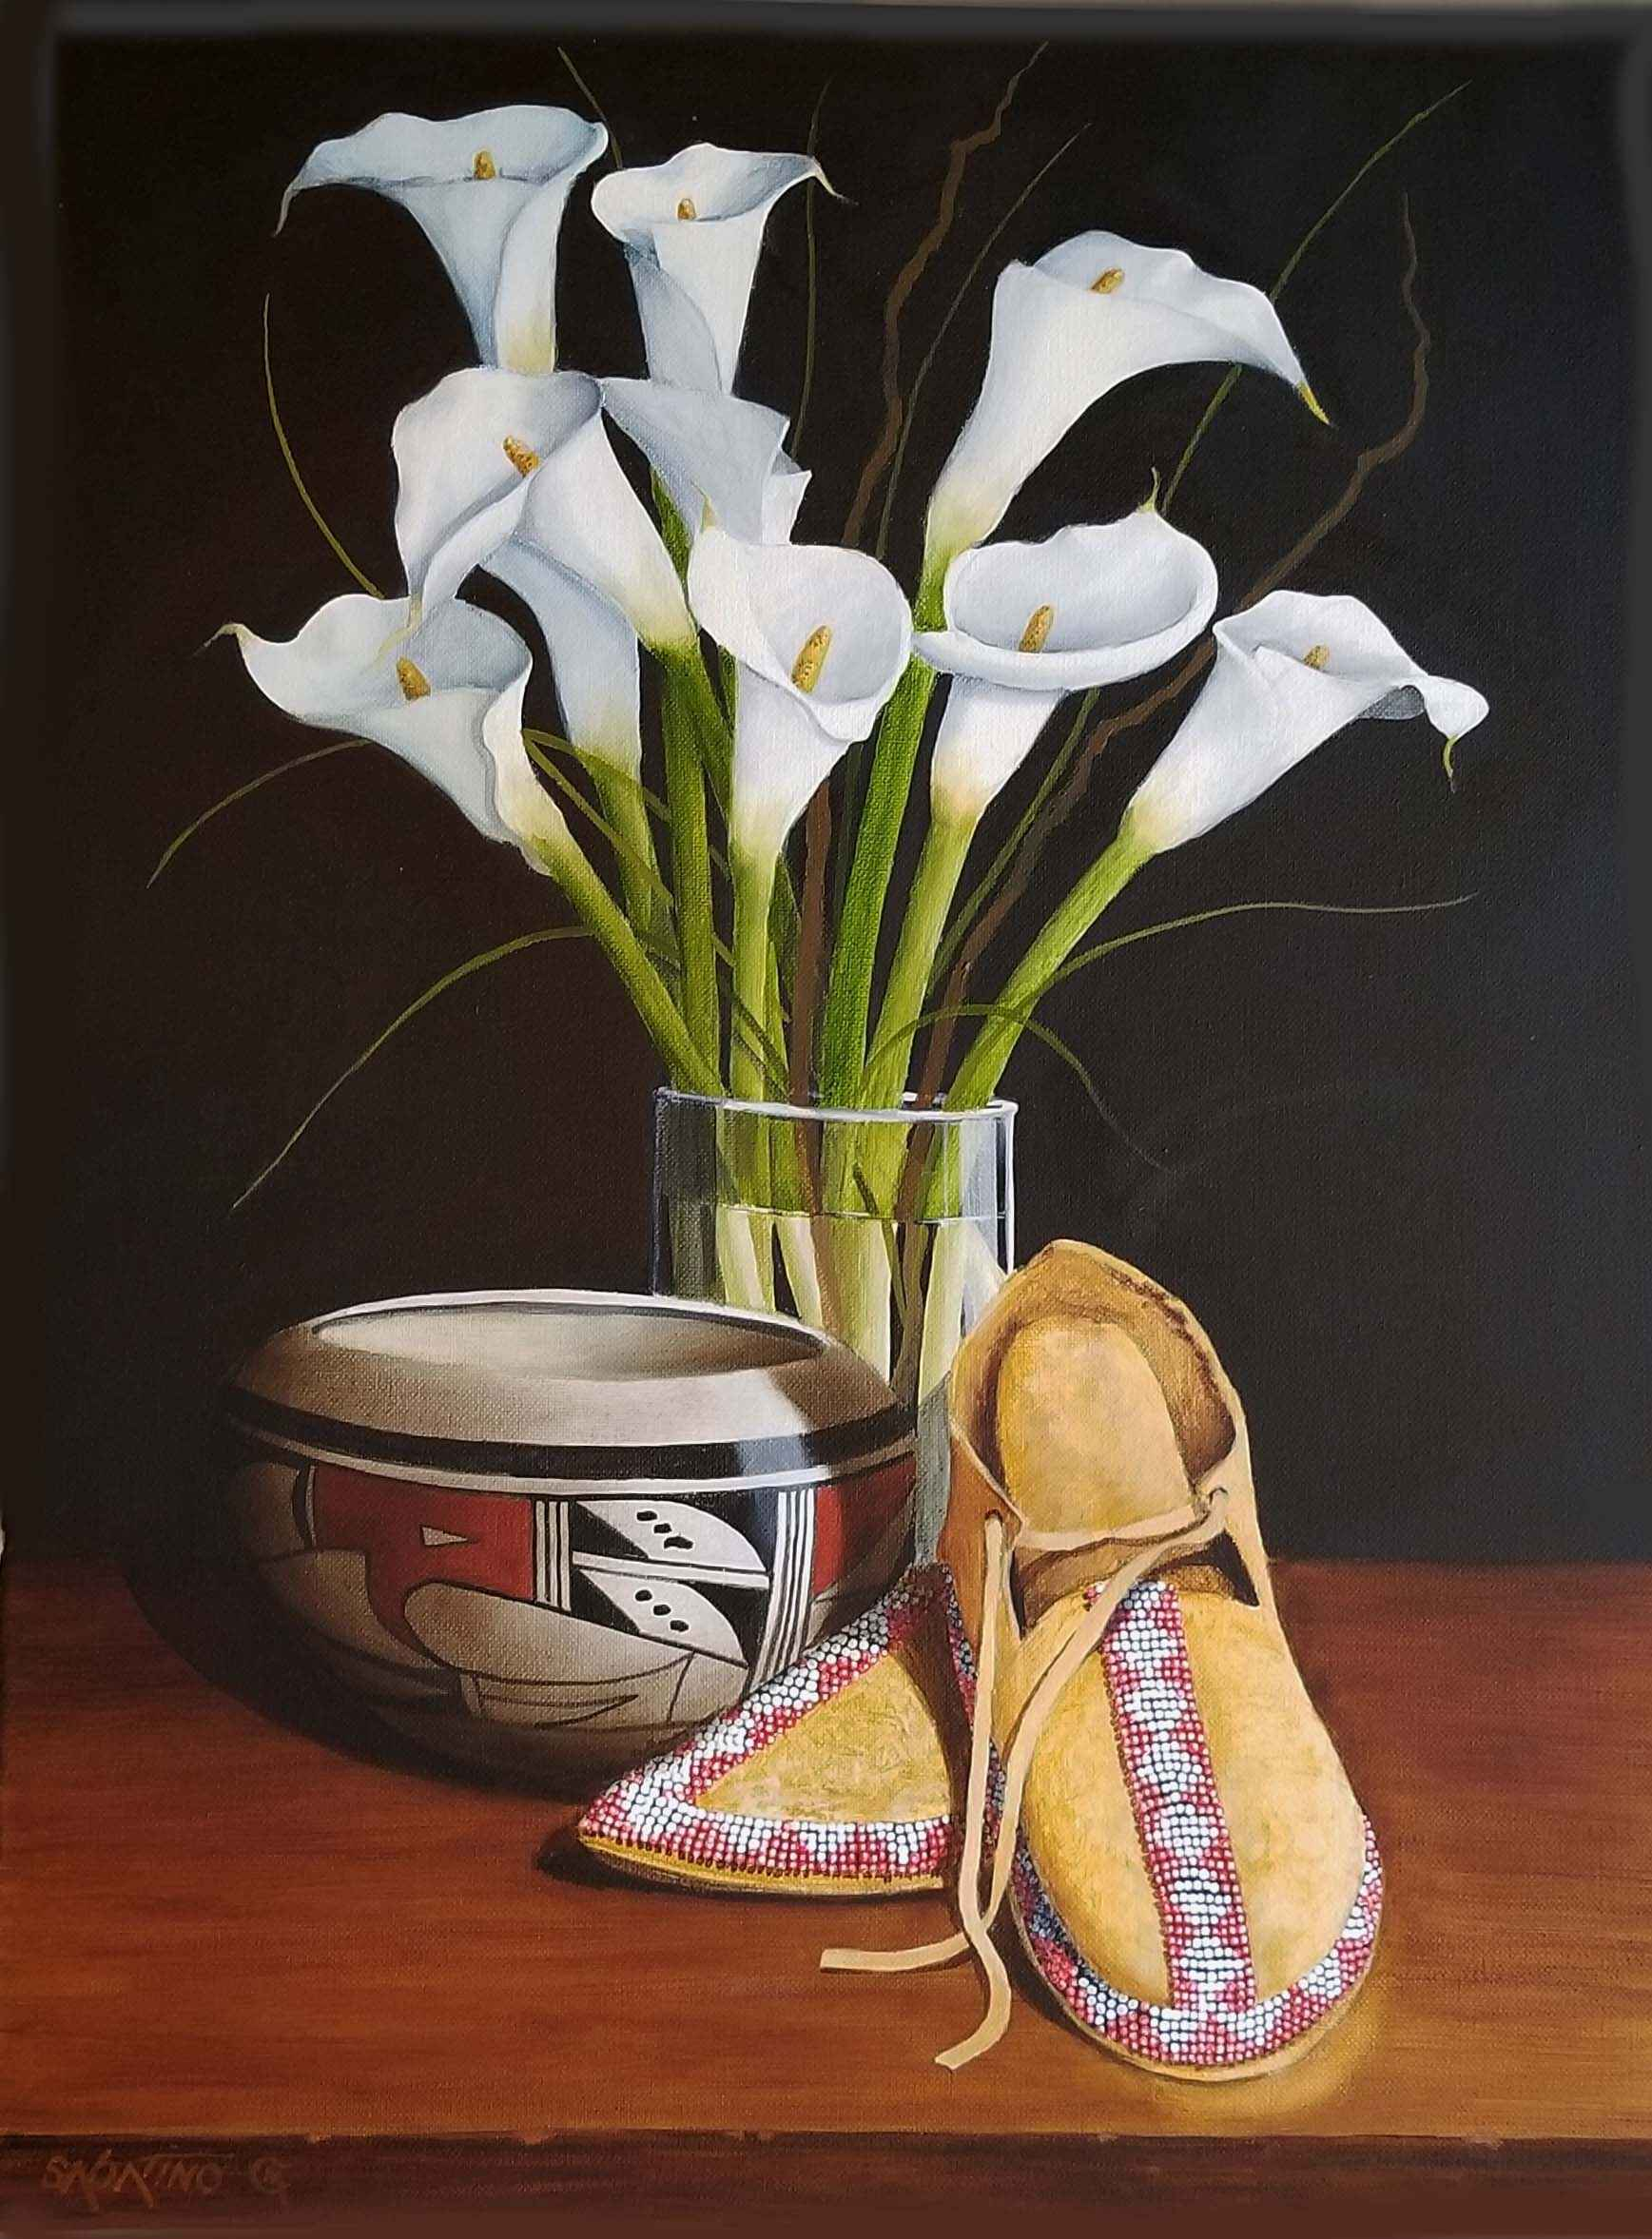 Lilies And Moccasins by  Chuck Sabatino - Masterpiece Online